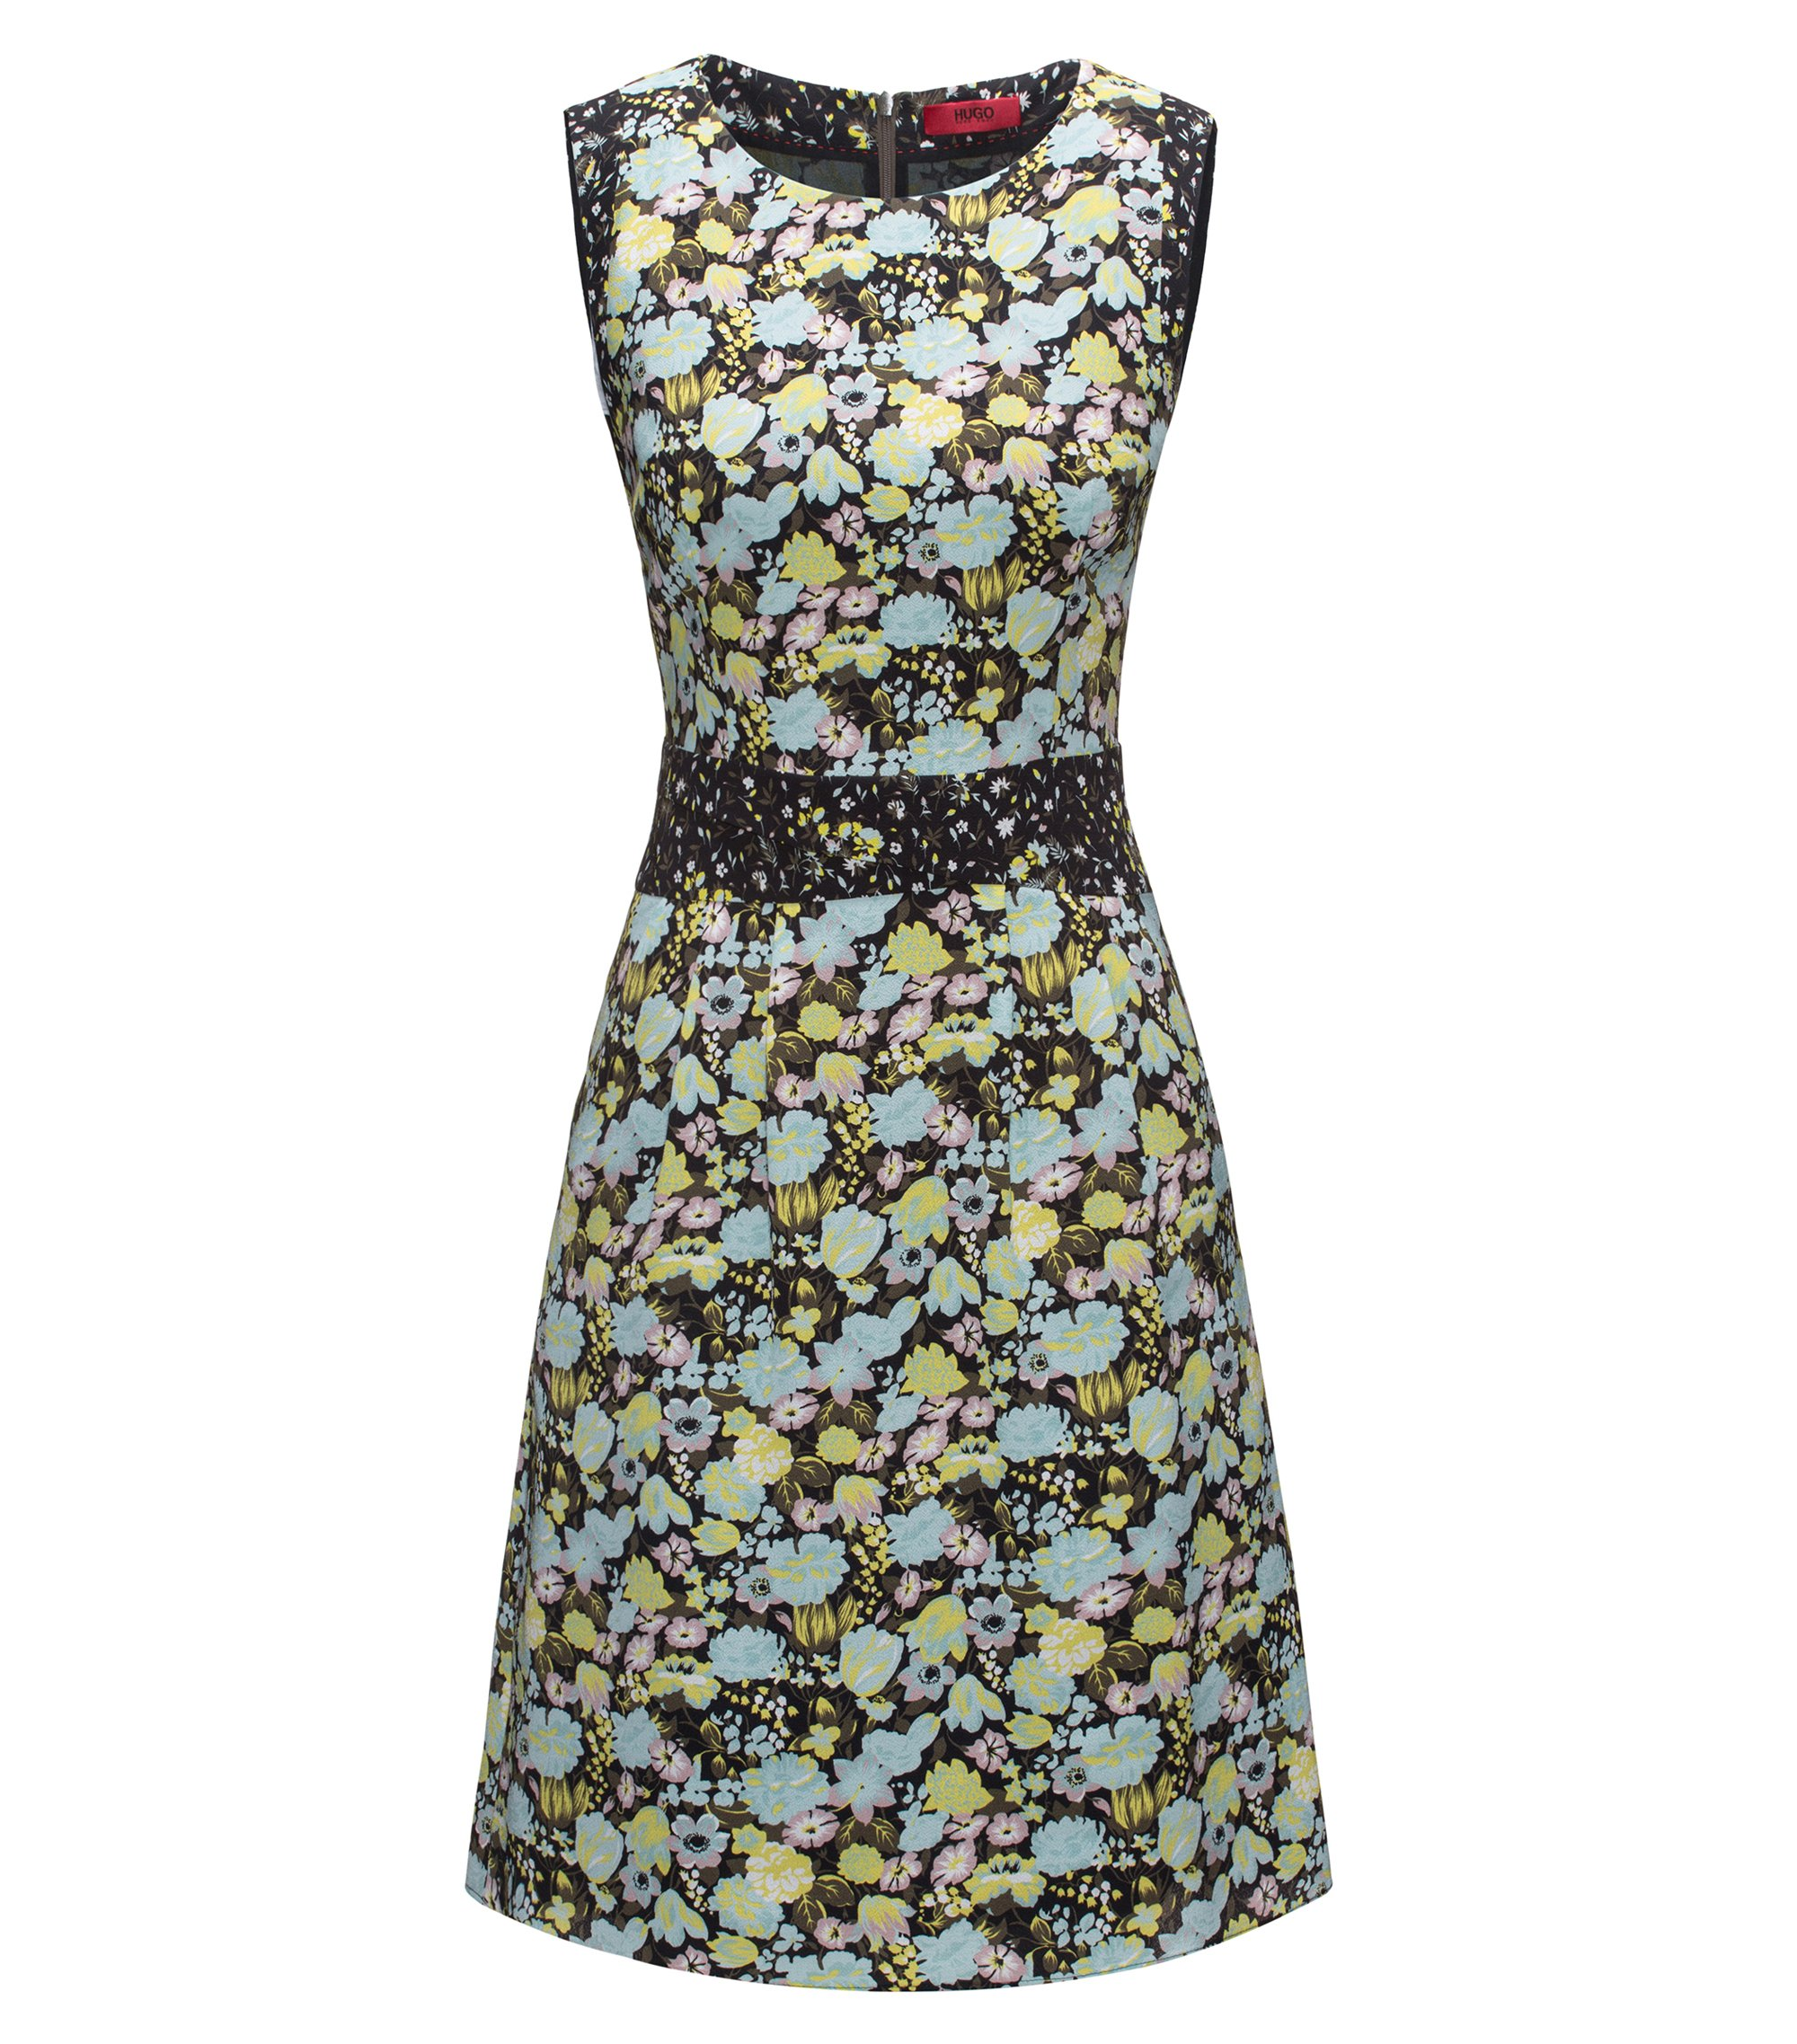 Cap-sleeved floral dress in stretch fabric, Patterned